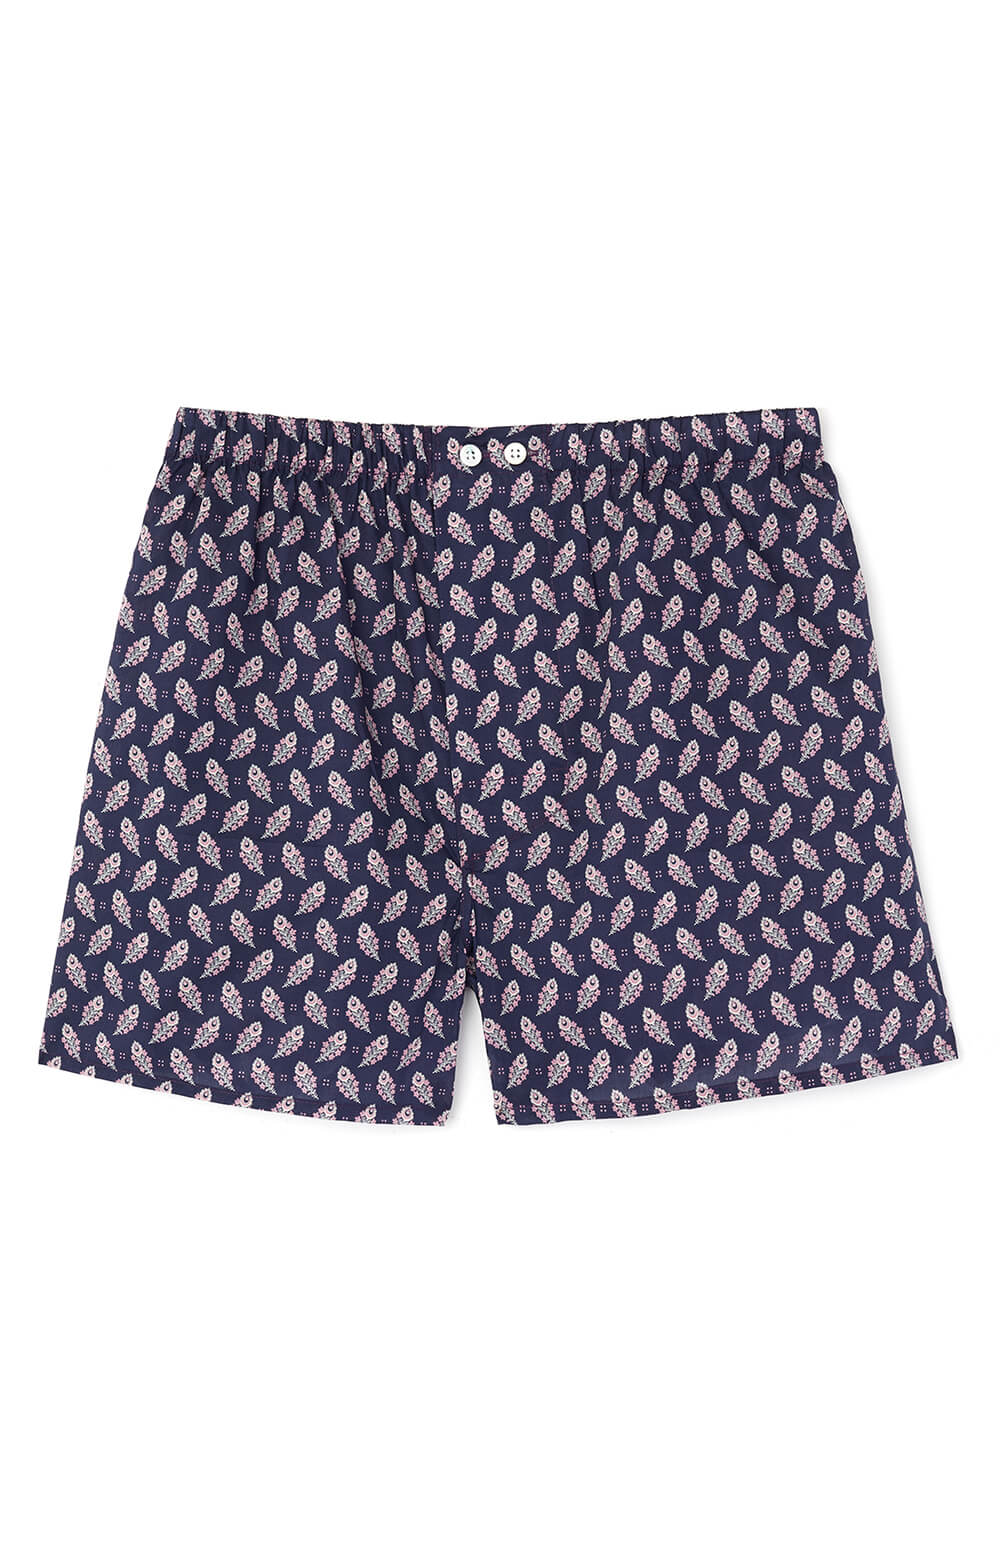 Fine Cotton Boxer Shorts made with Liberty Fabric (lmbb) - Cosmo